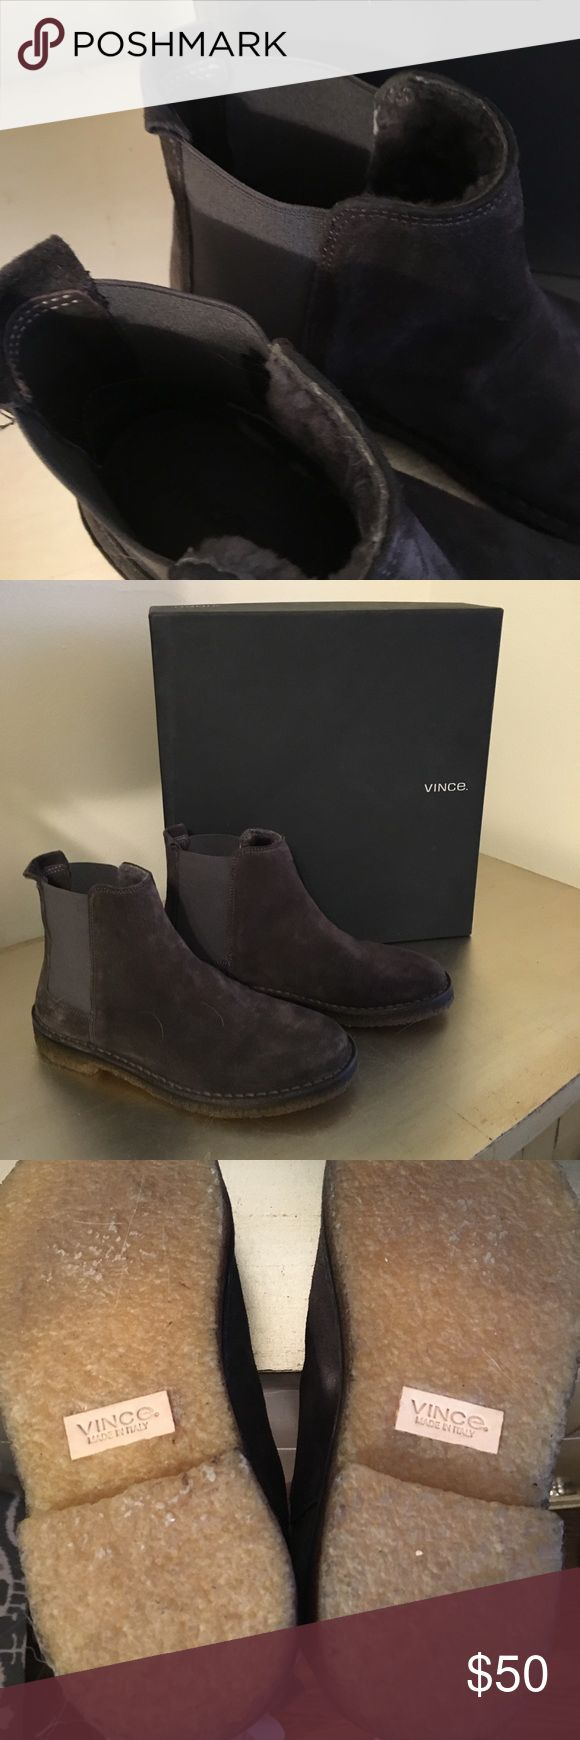 Vince grey desert boot These grey slip on desert boot are so comfortable and warm in cool weather. The inside is lined in fur. I only wore a few times. Need to make room for new. From a smoke free pet free home. Vince Shoes Ankle Boots & Booties